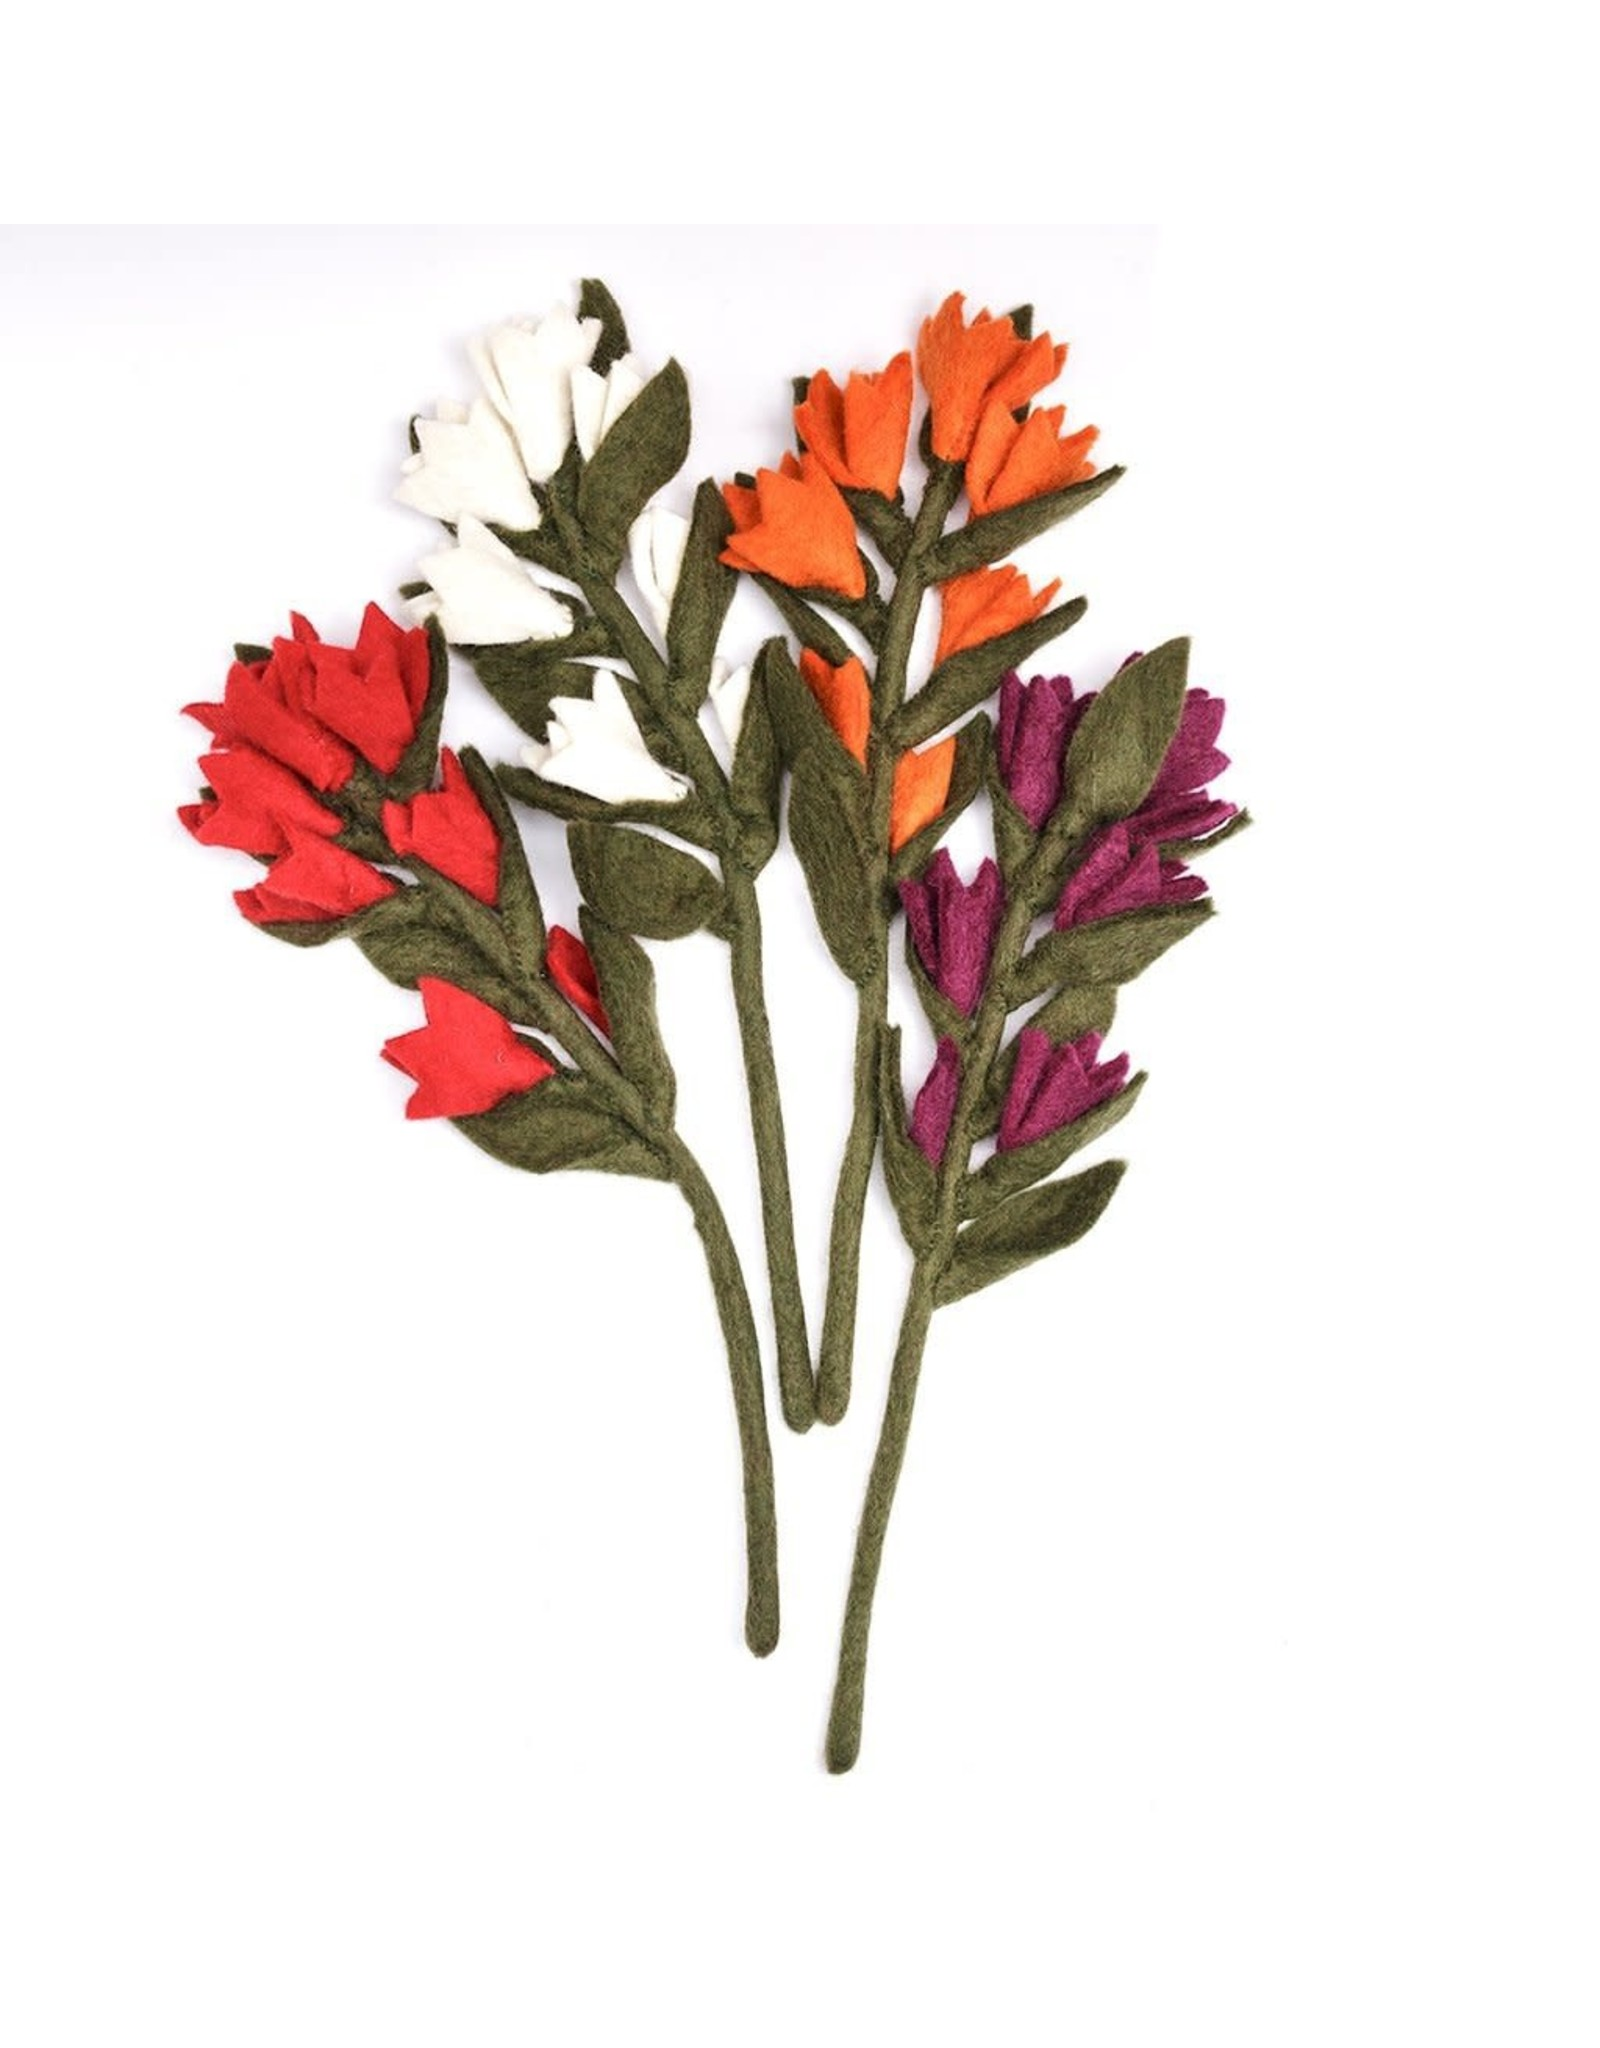 Nepal, Felt Indian Paint Brush